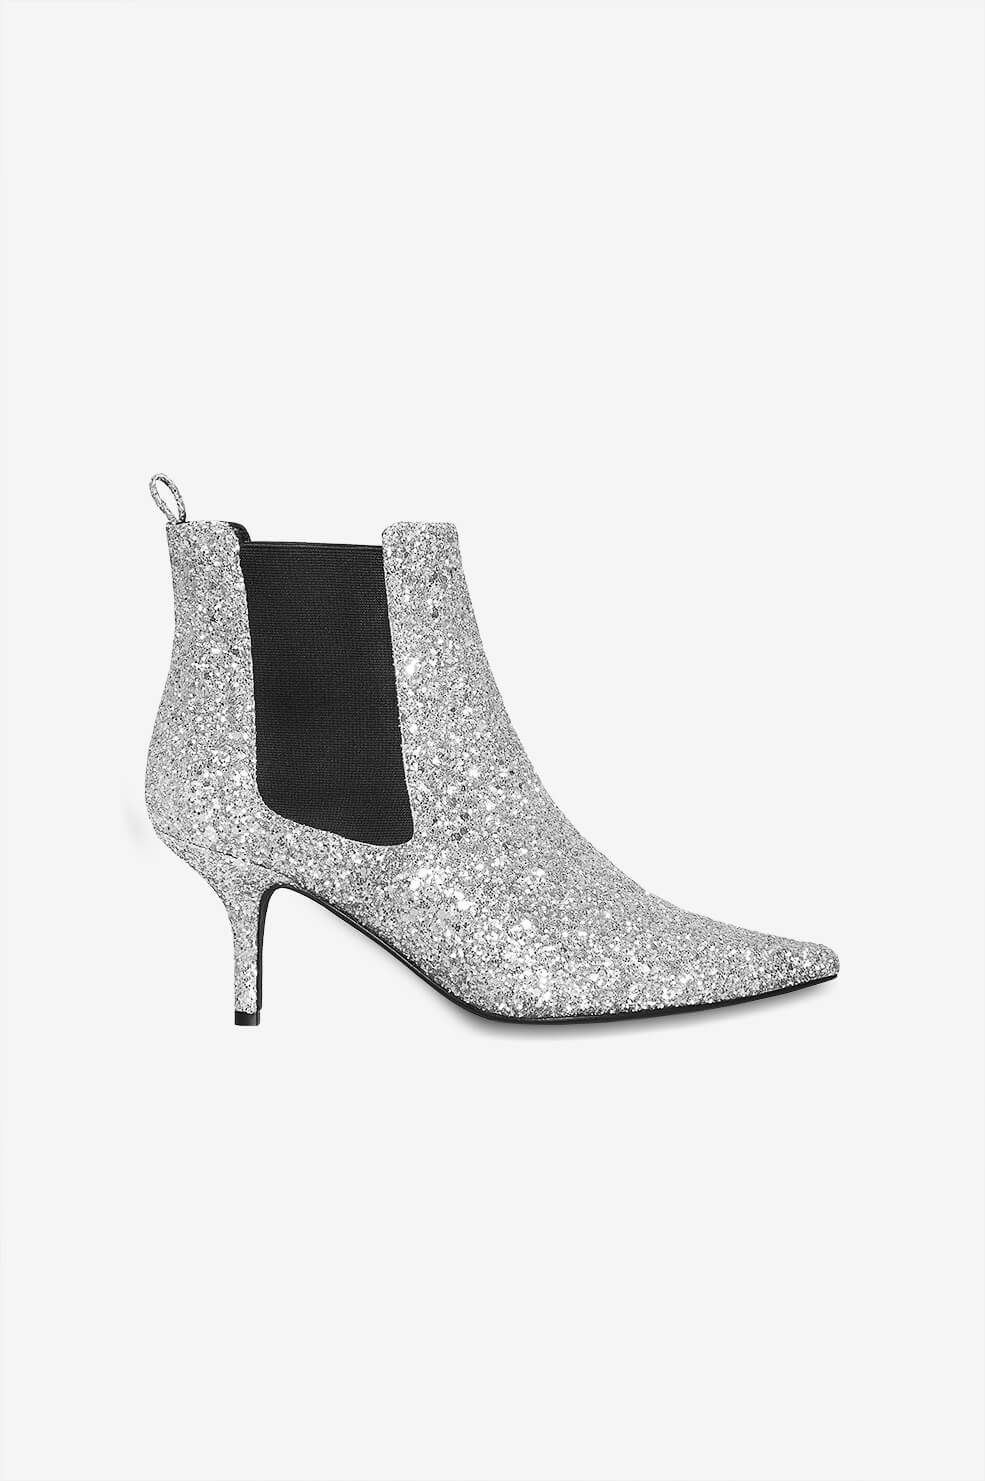 ANINE BING STEVIE BOOTS - SILVER